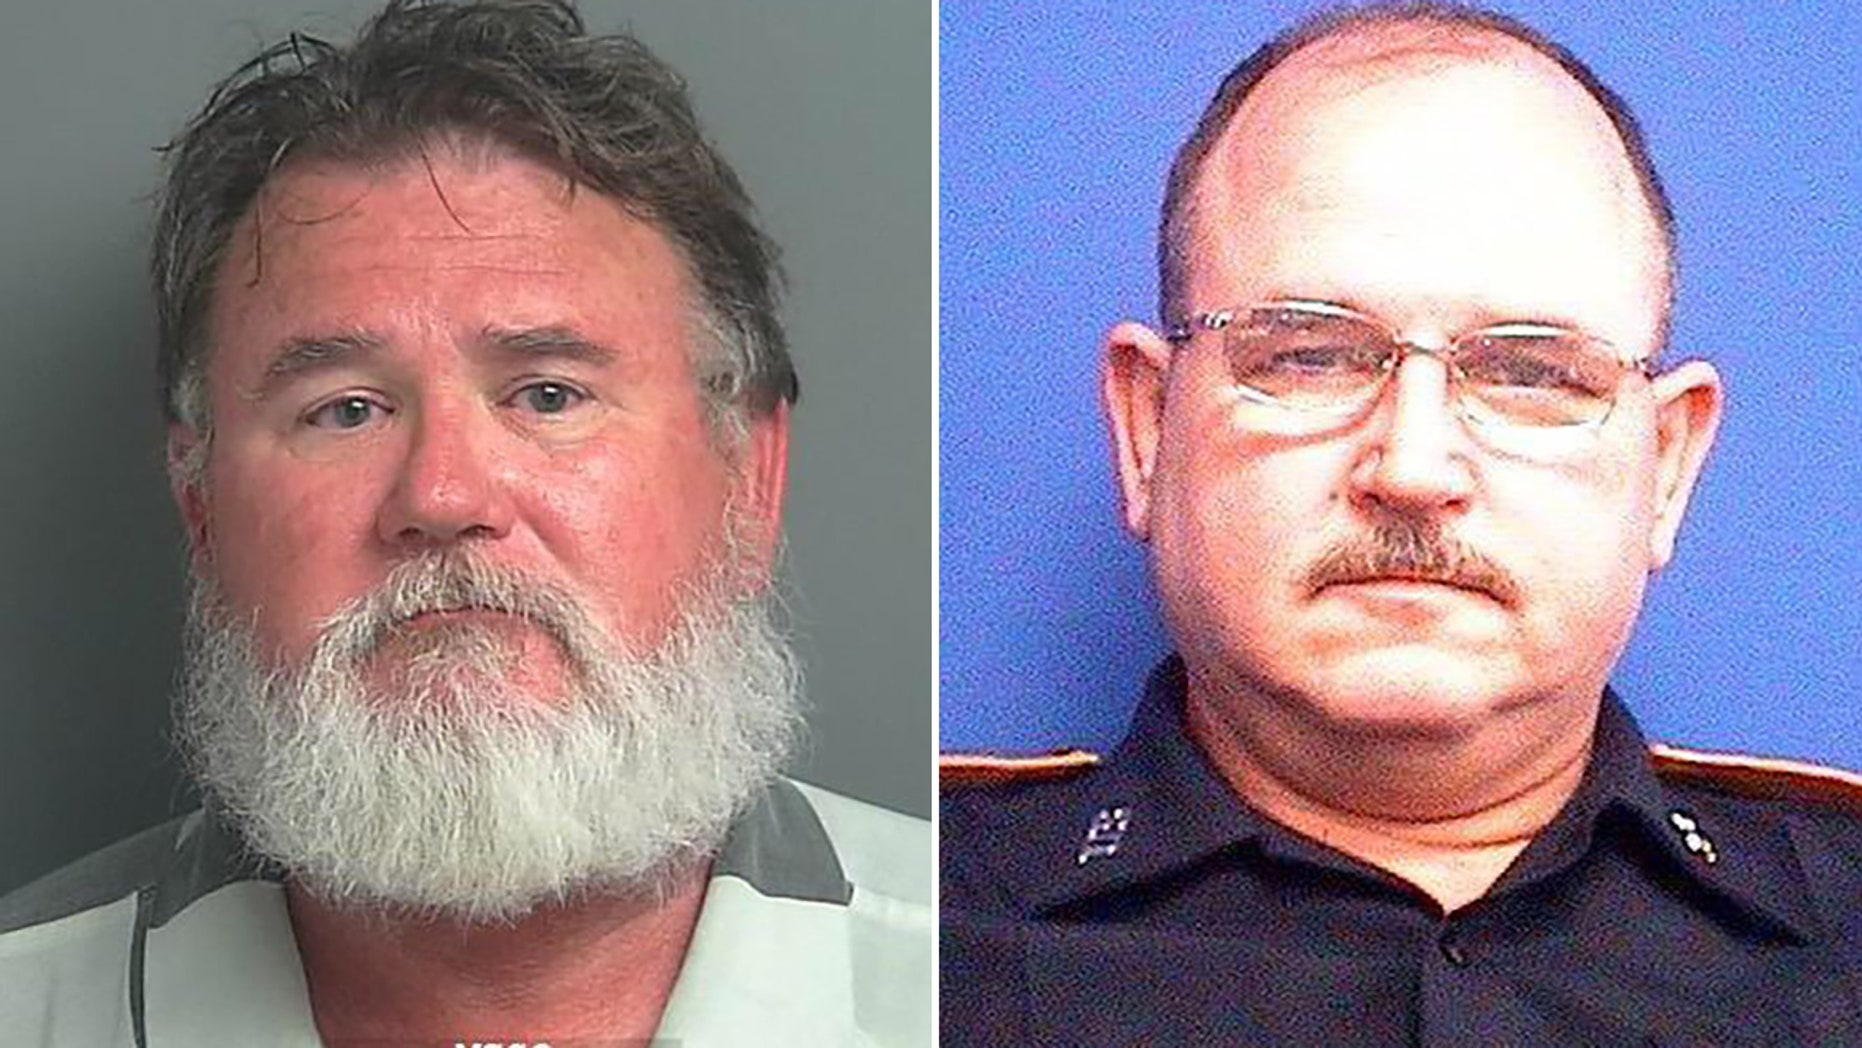 Robert Lee, 59, left, an off-duty police officer, fatally shot his brother, Rocky Lee, 57, an off-duty sheriff's deputy, authorities said.